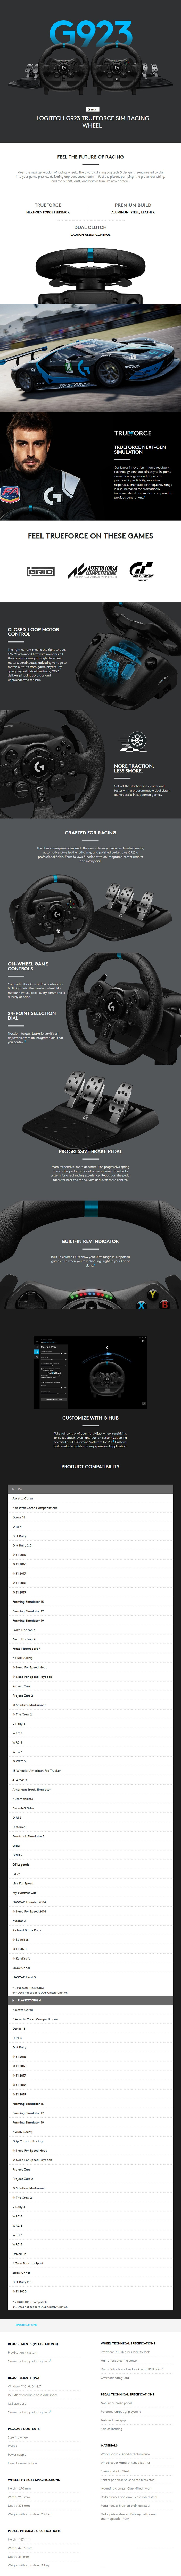 Logitech G923 TRUEFORCE Sim Racing Wheel for PS4 & PC - Overview 1